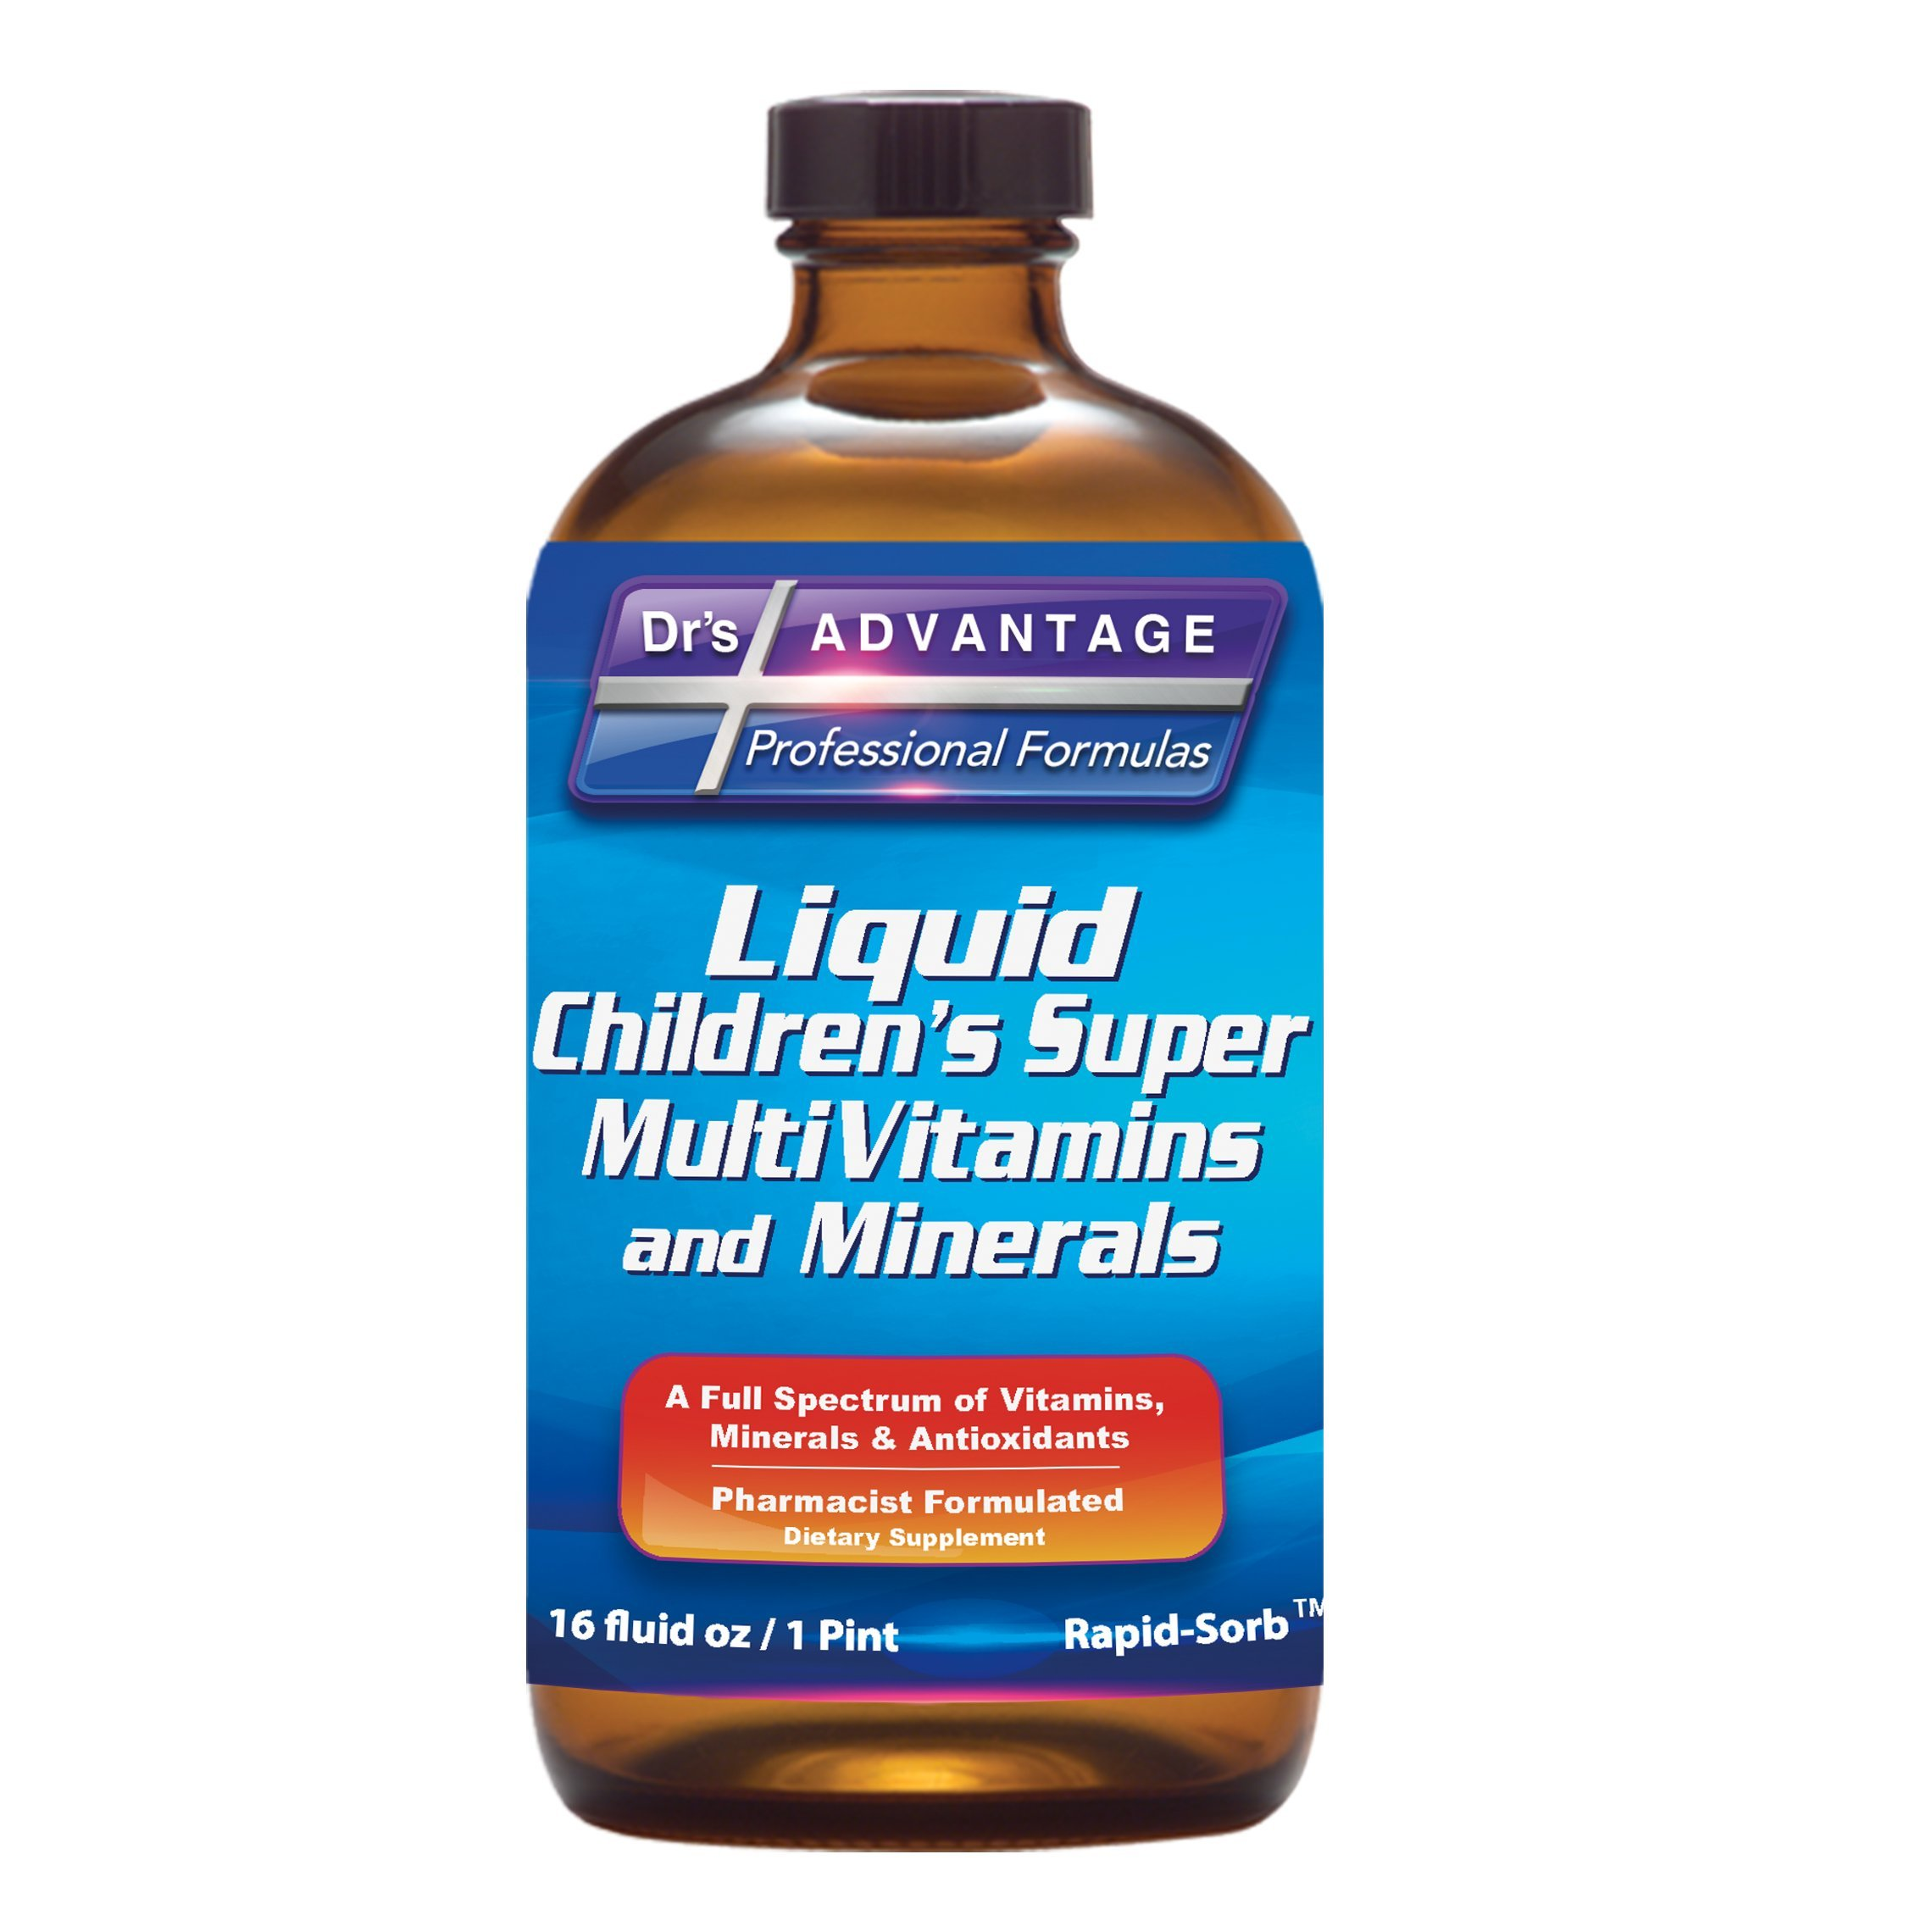 Dr's Advantage DA862 Liquid Children's Multivitamin and Minerals, 16 oz.